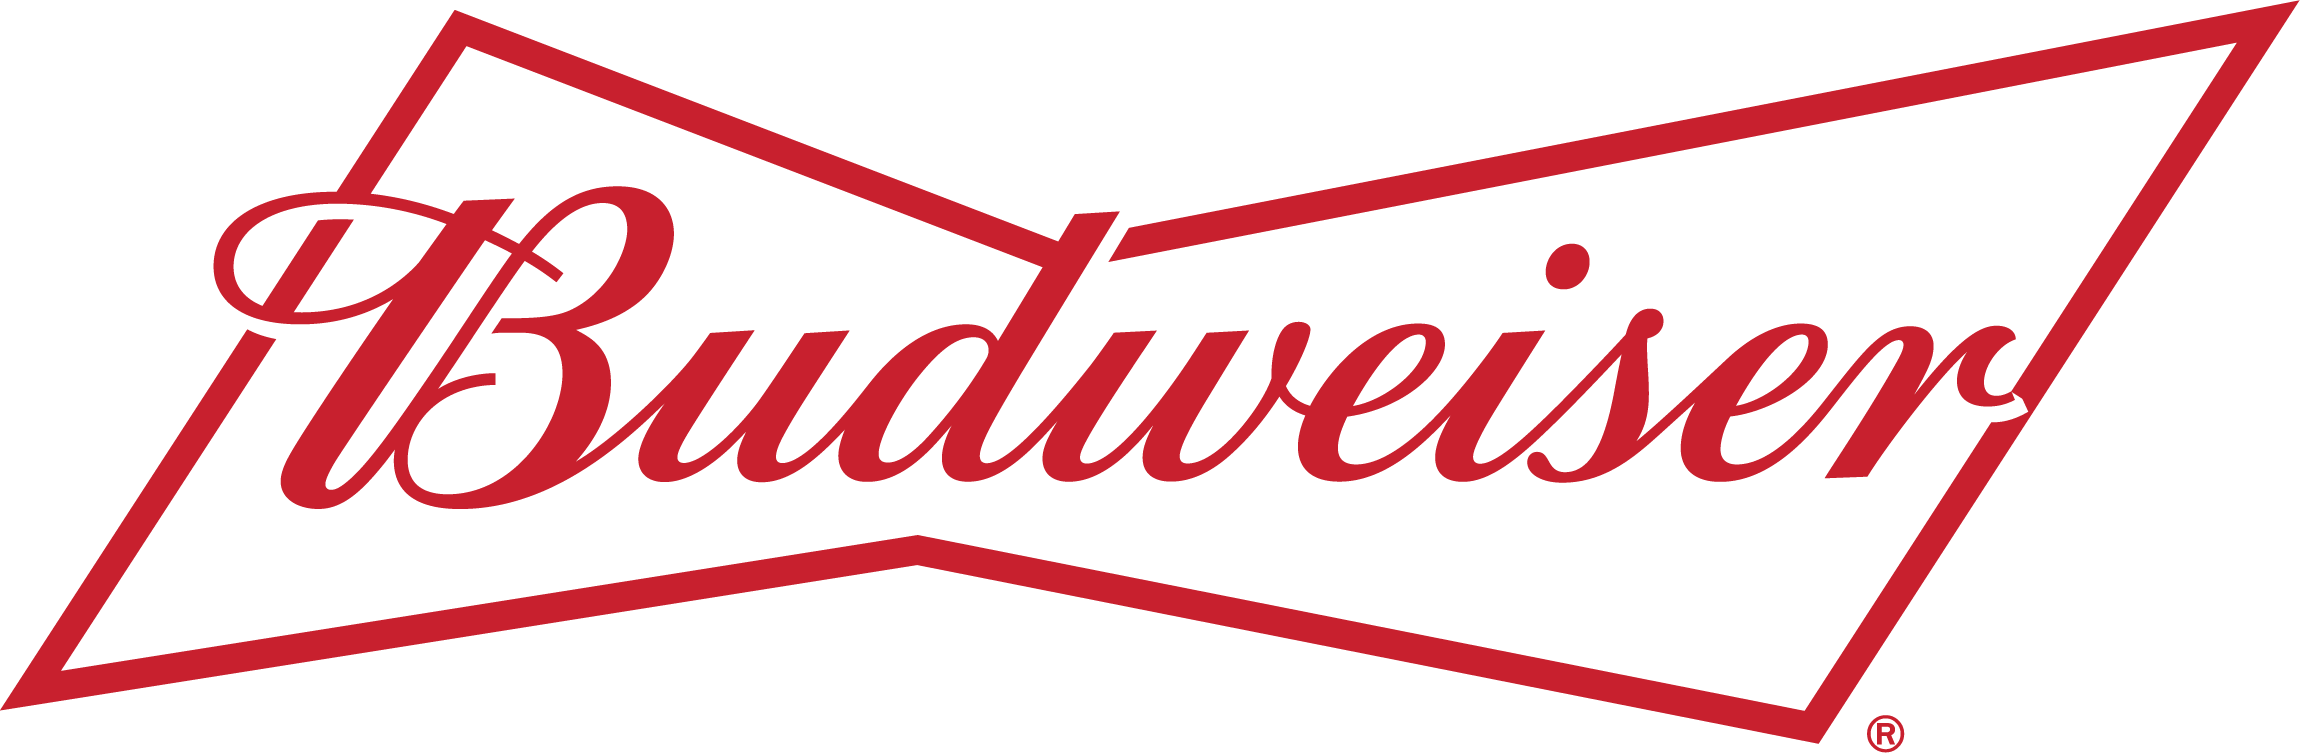 budlogo_red.png